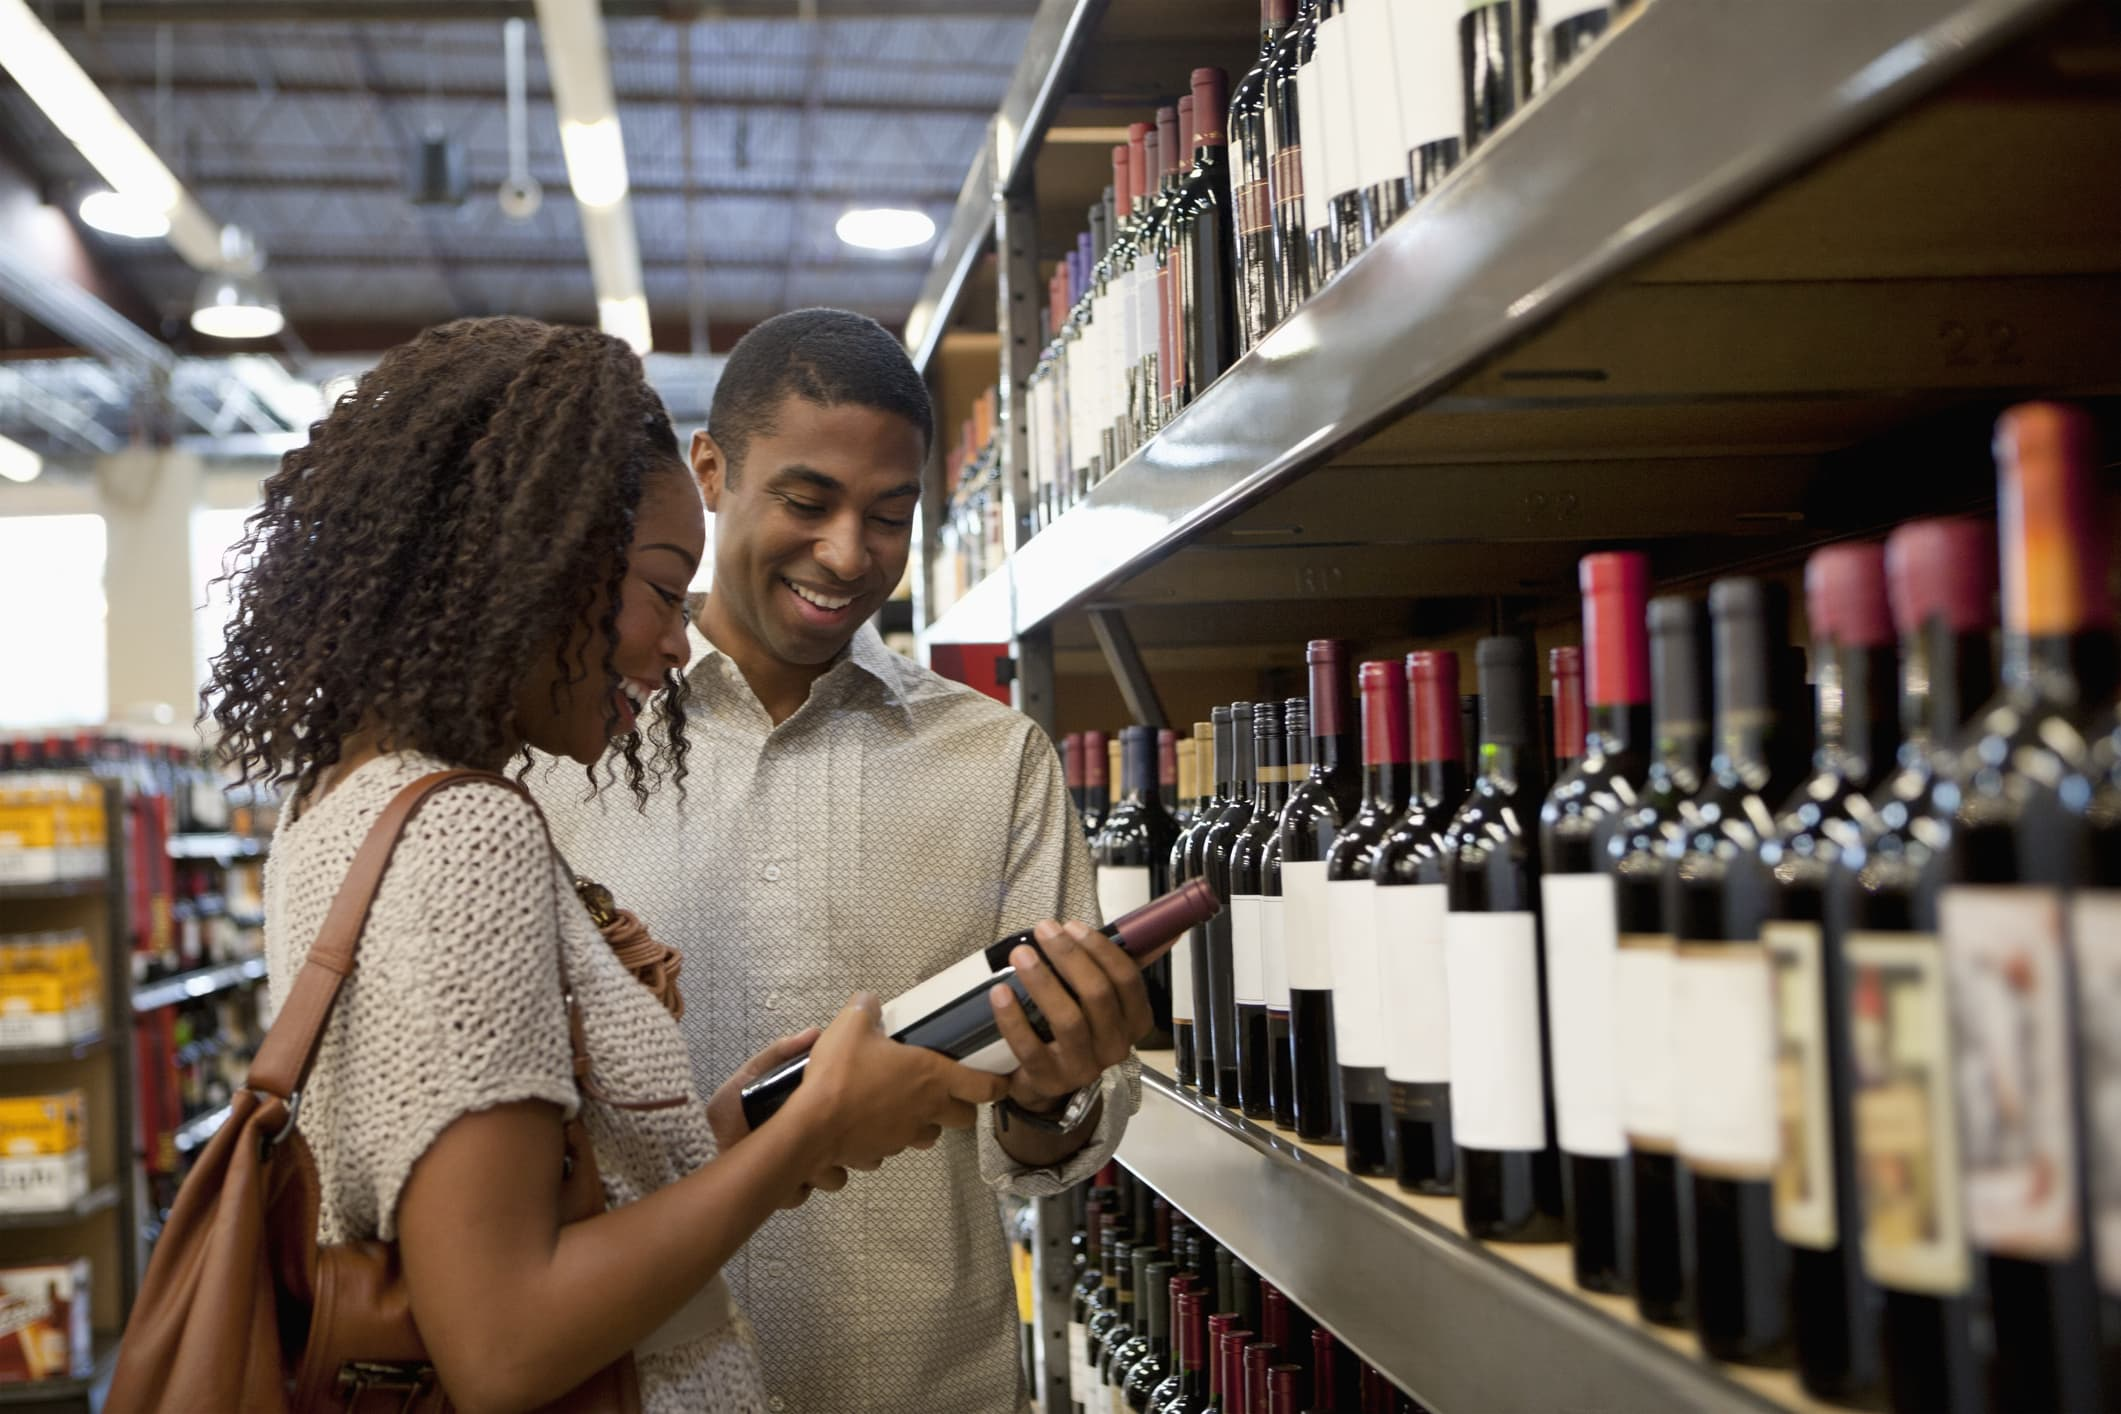 A step-by-step guide to buying great wine without going broke